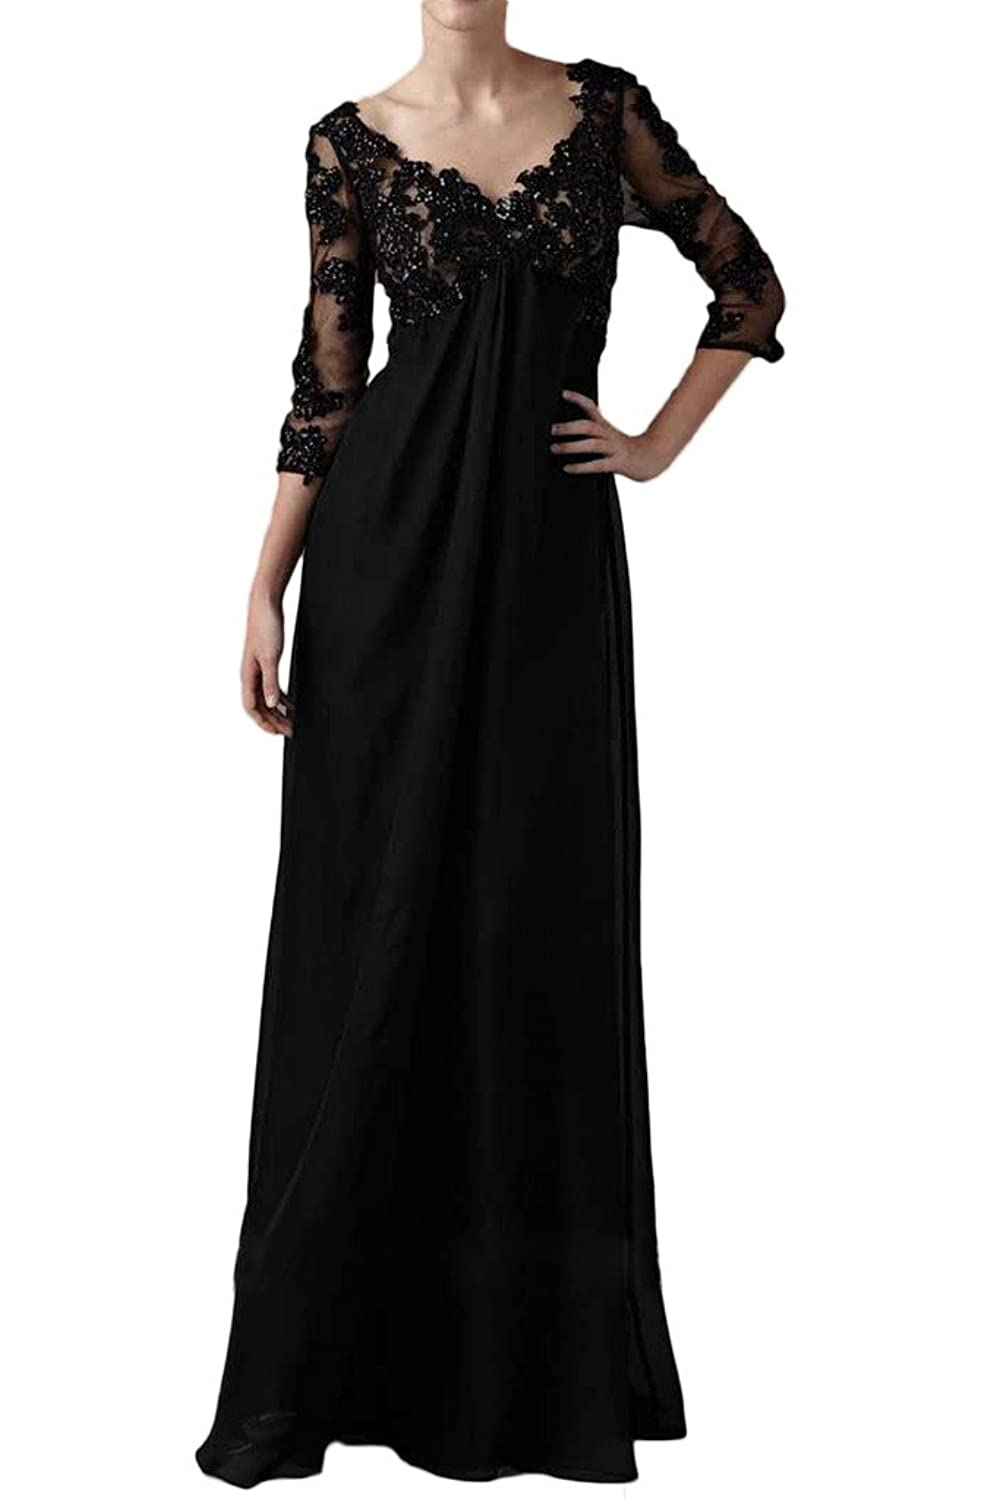 Charm Bridal Black Deep V Chiffon Women Mother of Bride Dress with Long Sleeves